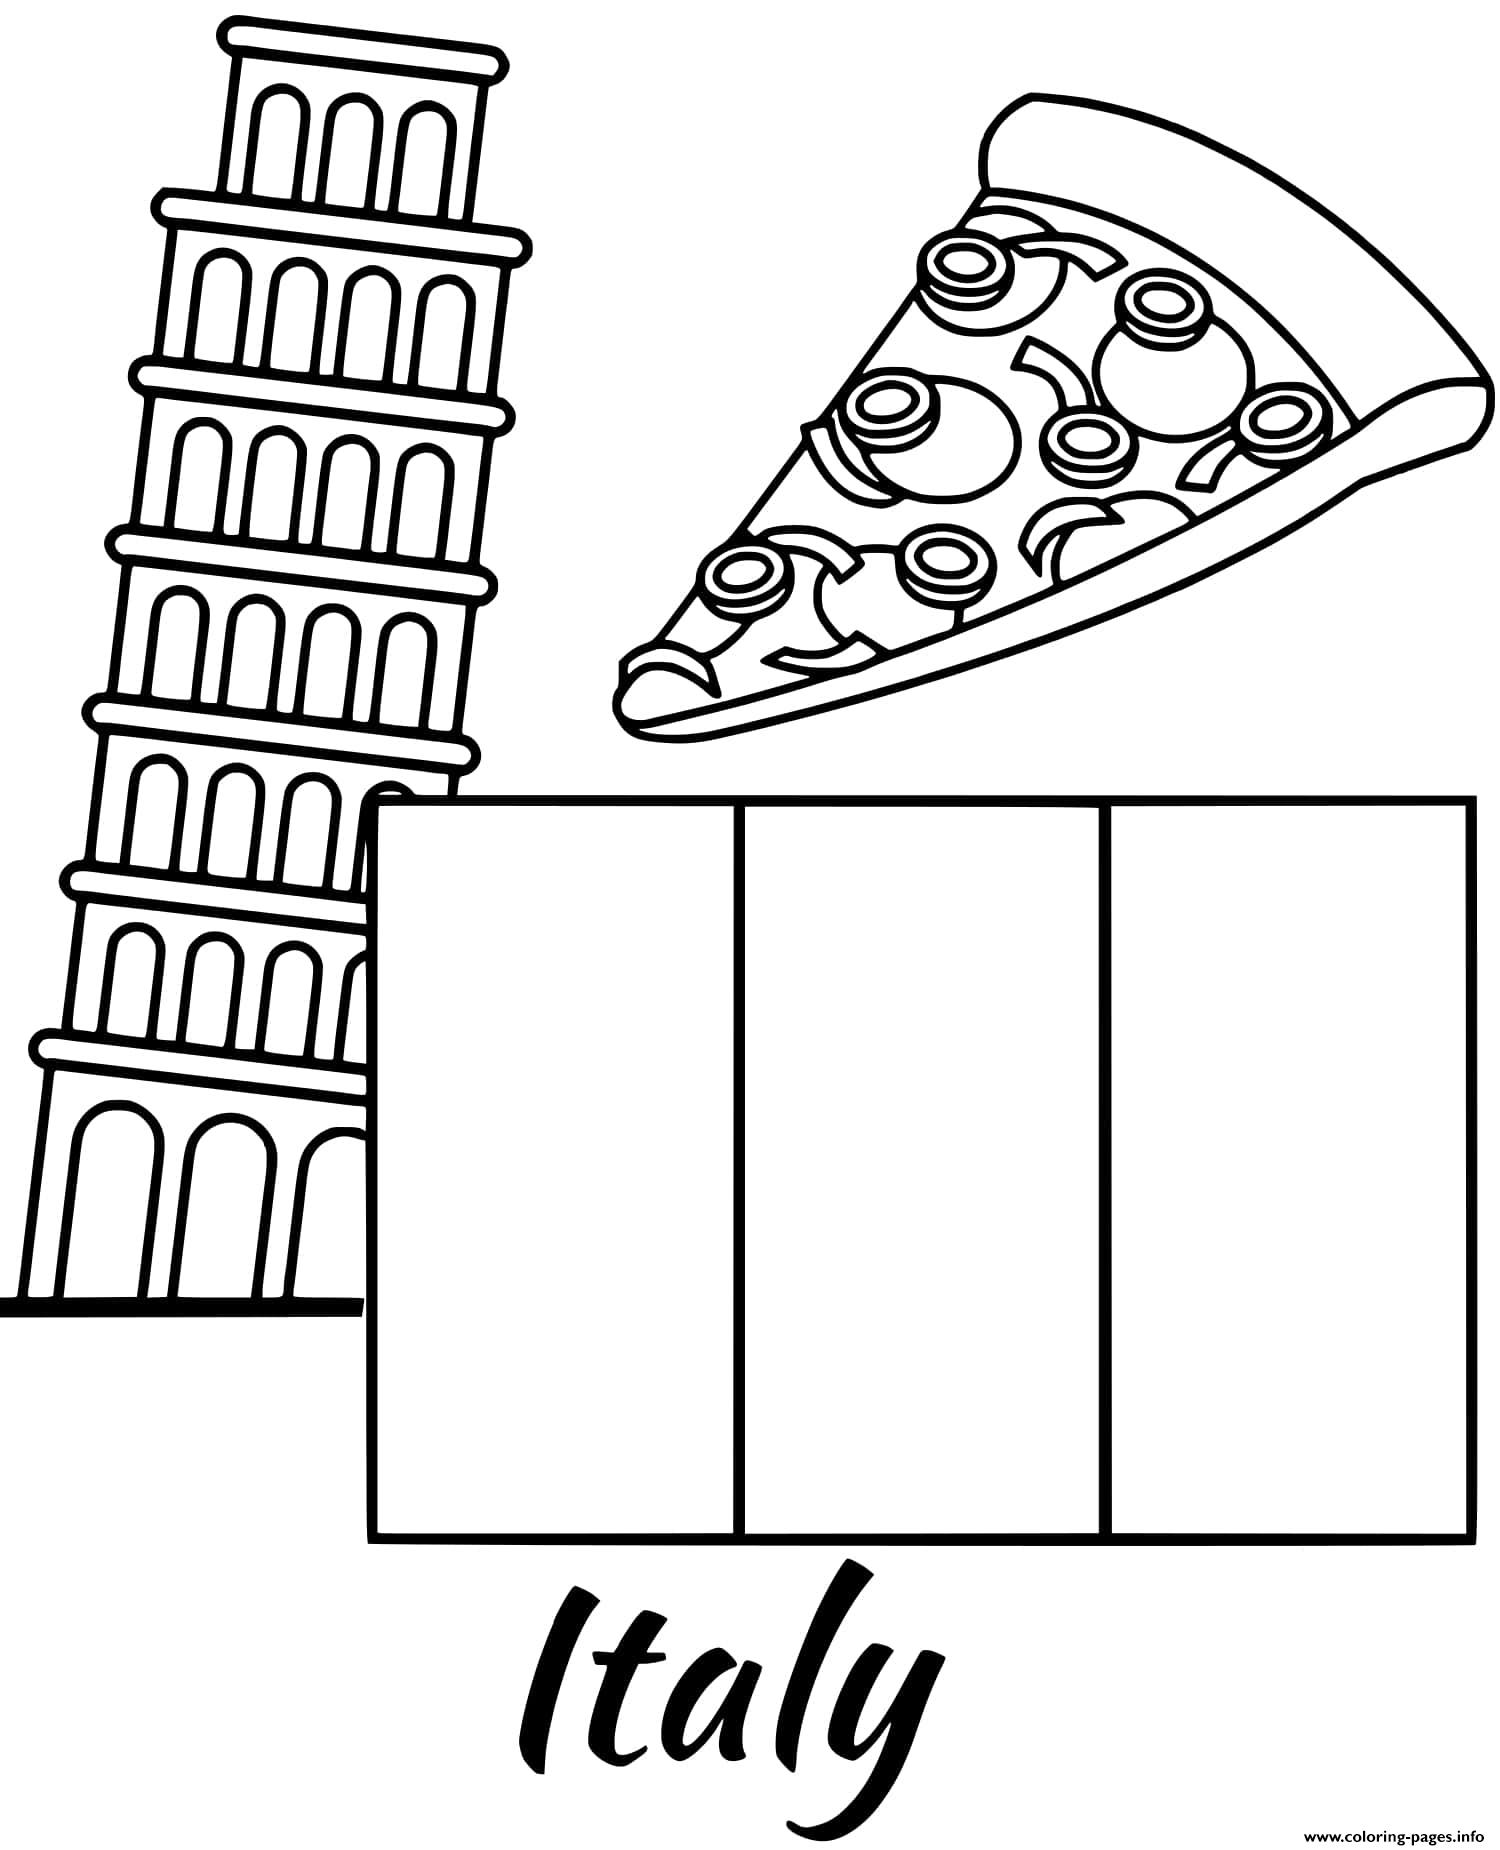 Italy Flag Piza coloring pages